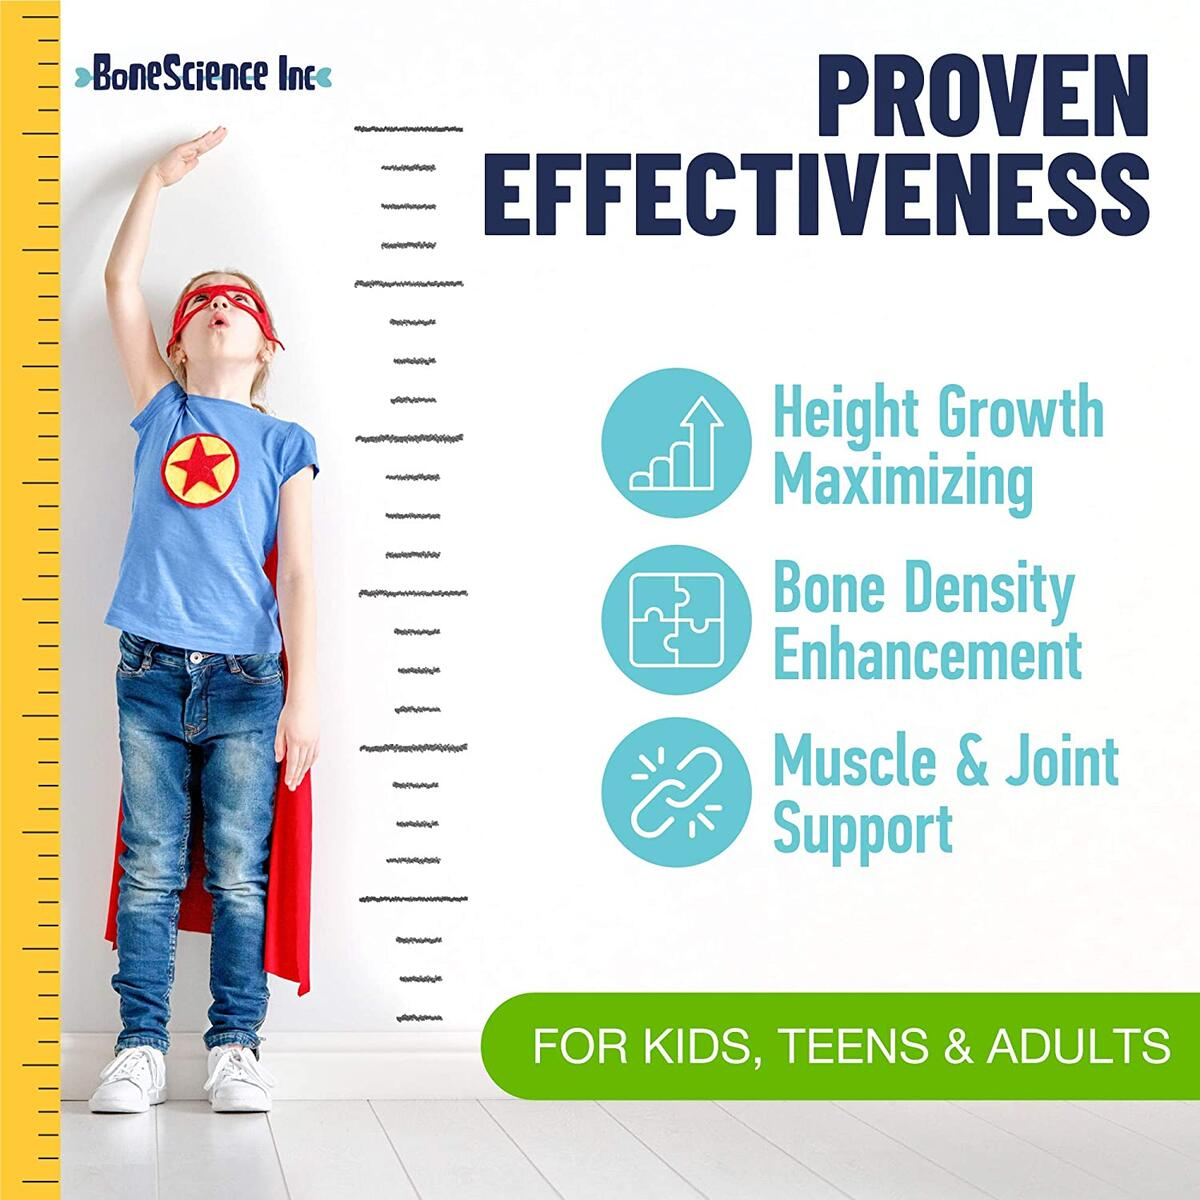 Height Growth Pills for Adults & Kids - Growing Pills & Peak Height Maximizer - Natural Bone Support - Growth Vitamins for Teens Height - Grow Taller Height Pill Supplement - 60 Capsules - Made in USA